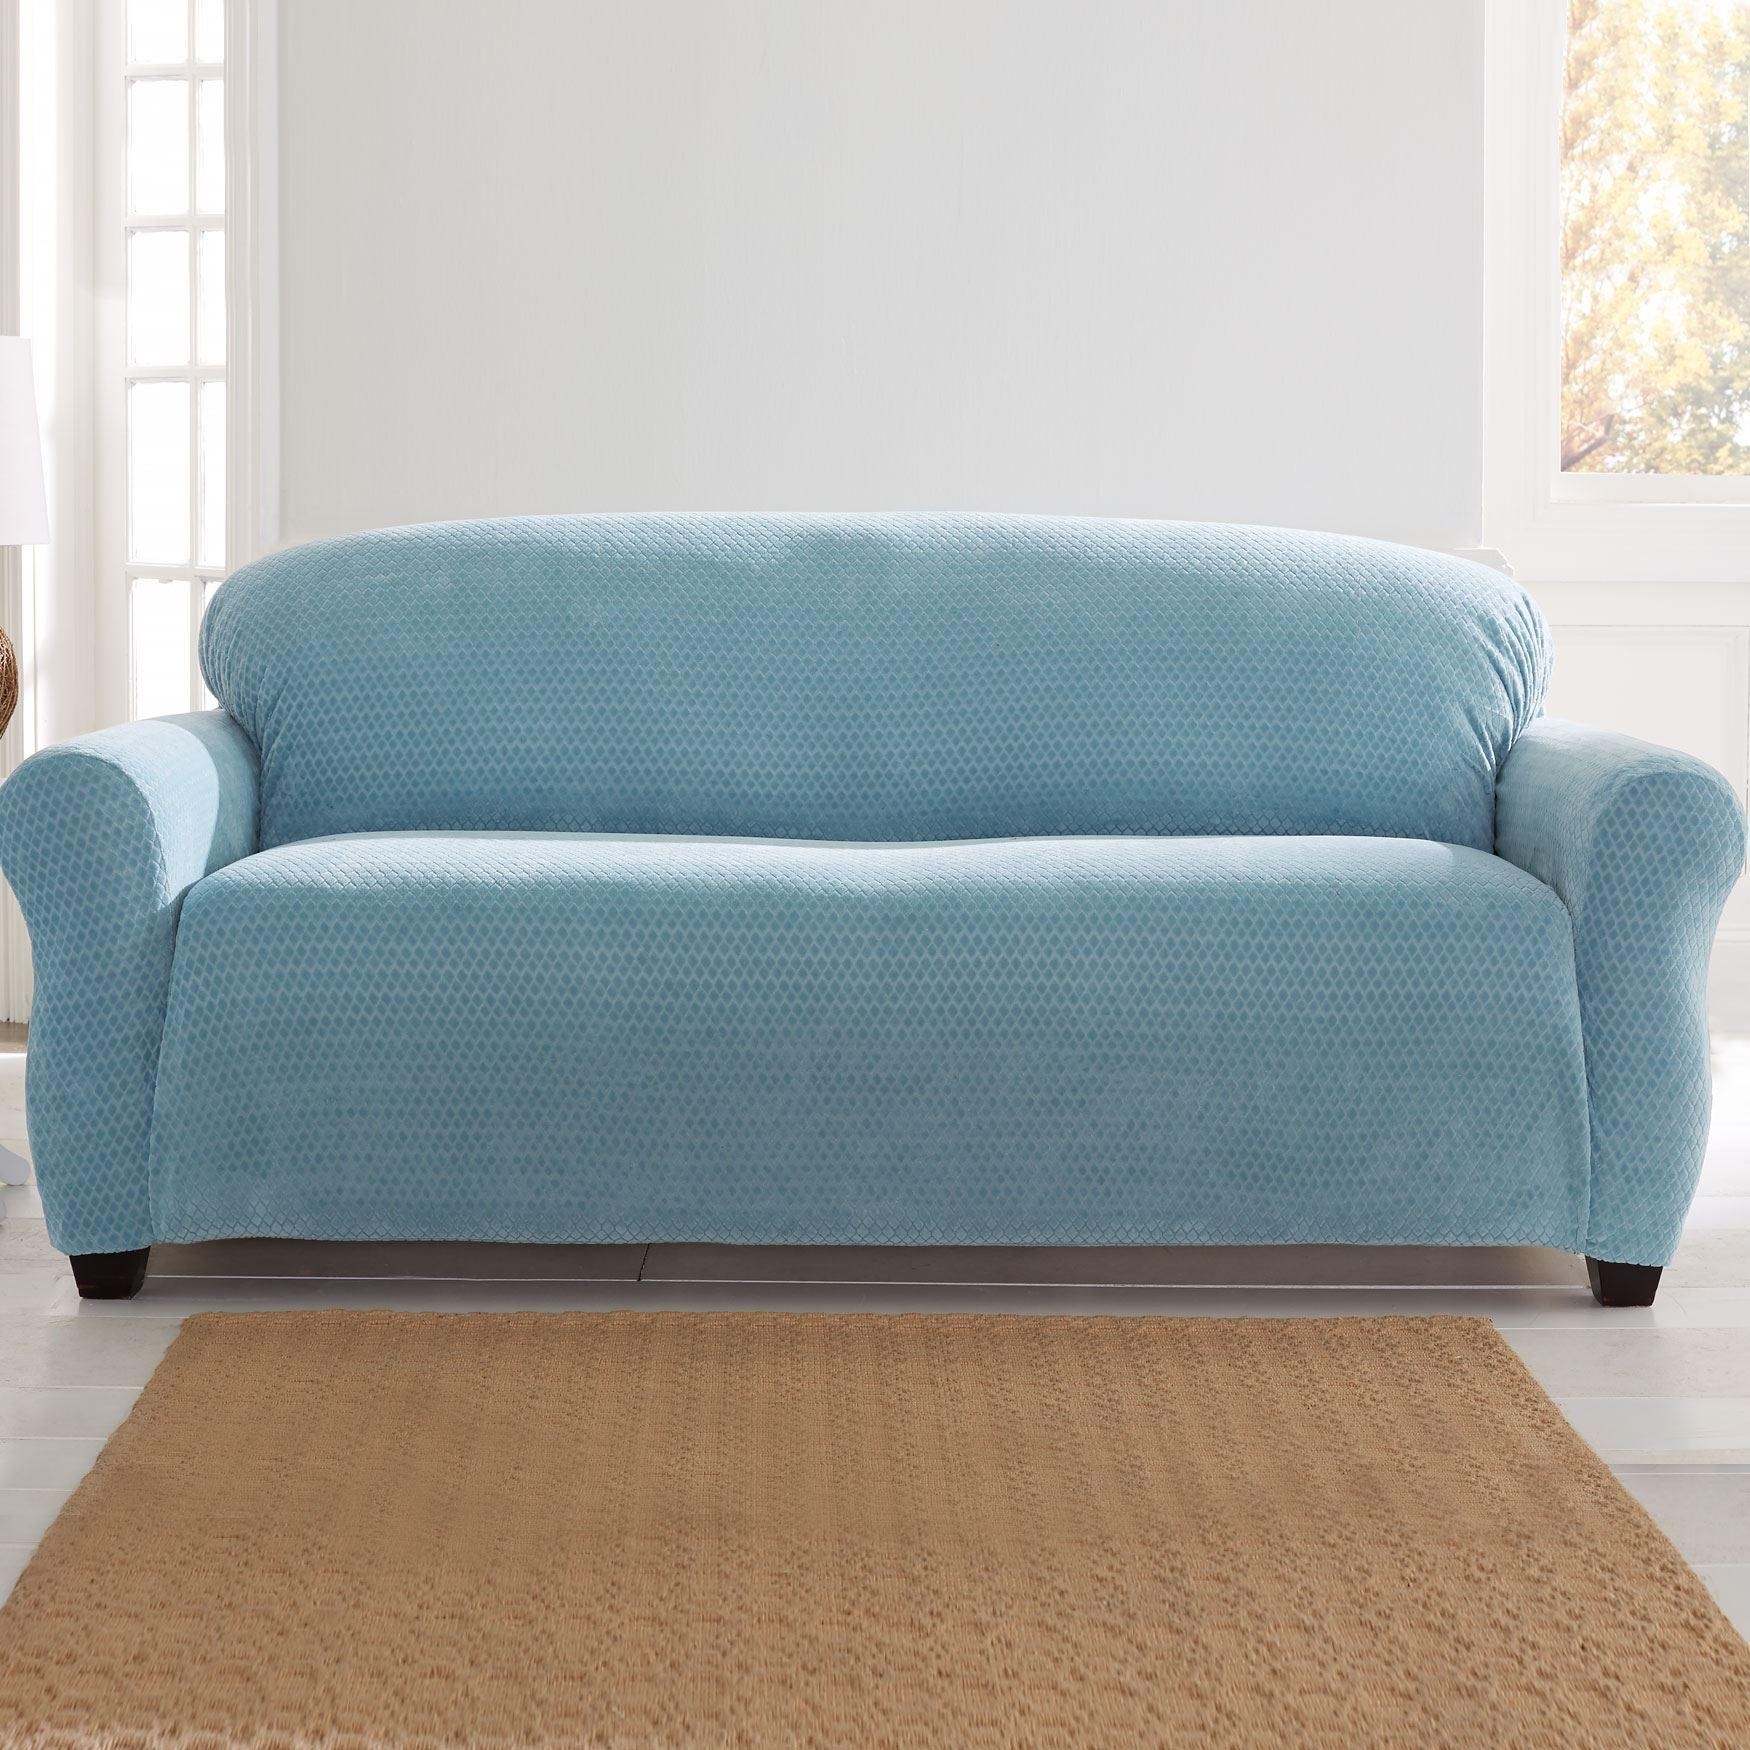 Brylanehome® Studio Stretch Diamond Extra Long Sofa Slipcover With Regard To Turquoise Sofa Covers (View 2 of 20)